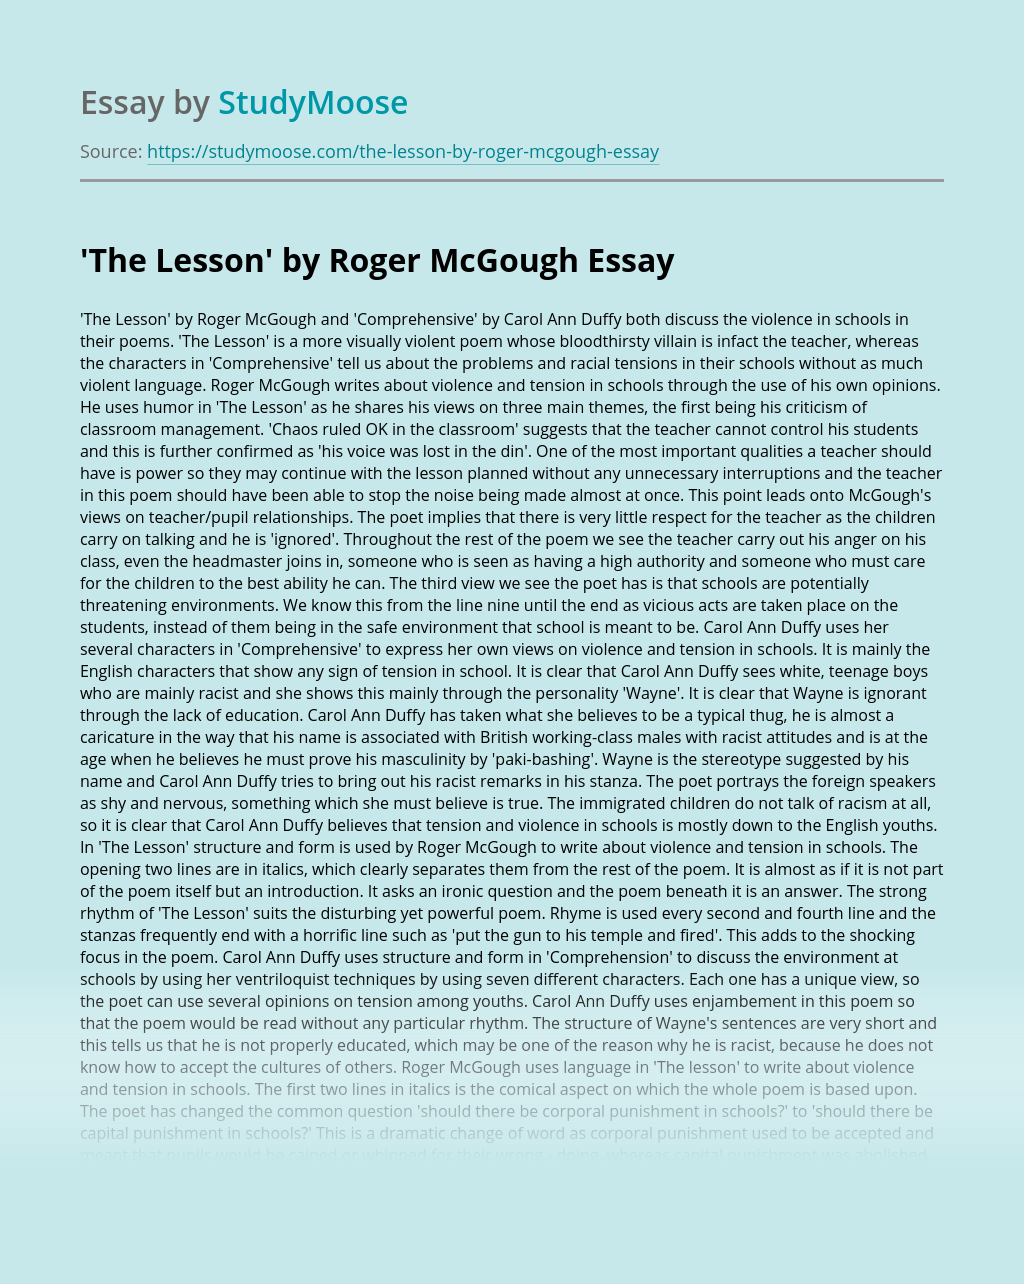 'The Lesson' by Roger McGough